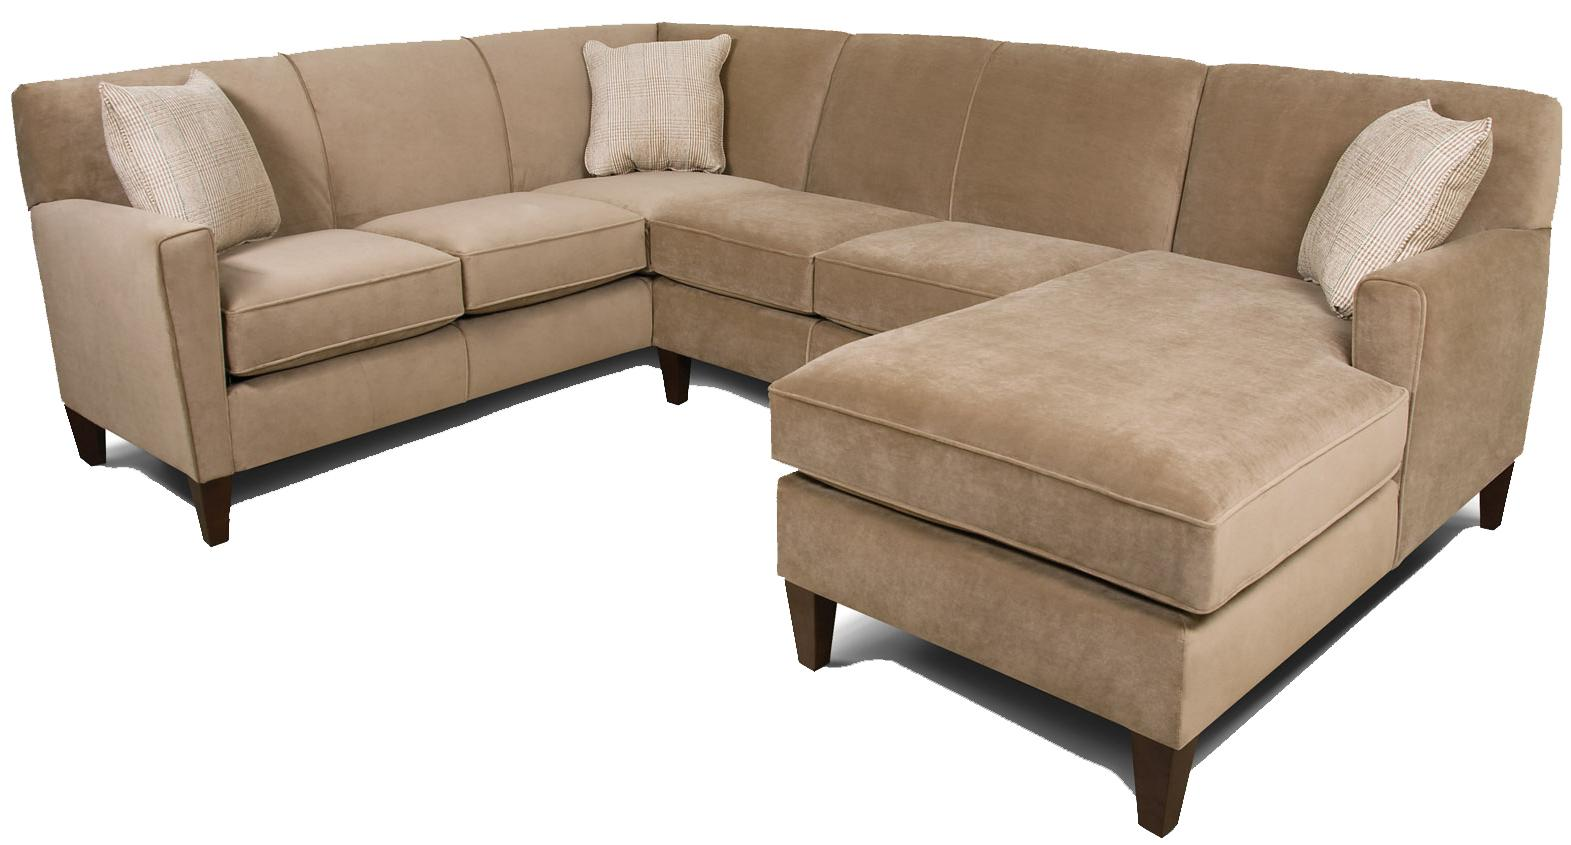 England Collegedale 3pc Sectional Sofa - Item Number: 6200-64+43+05